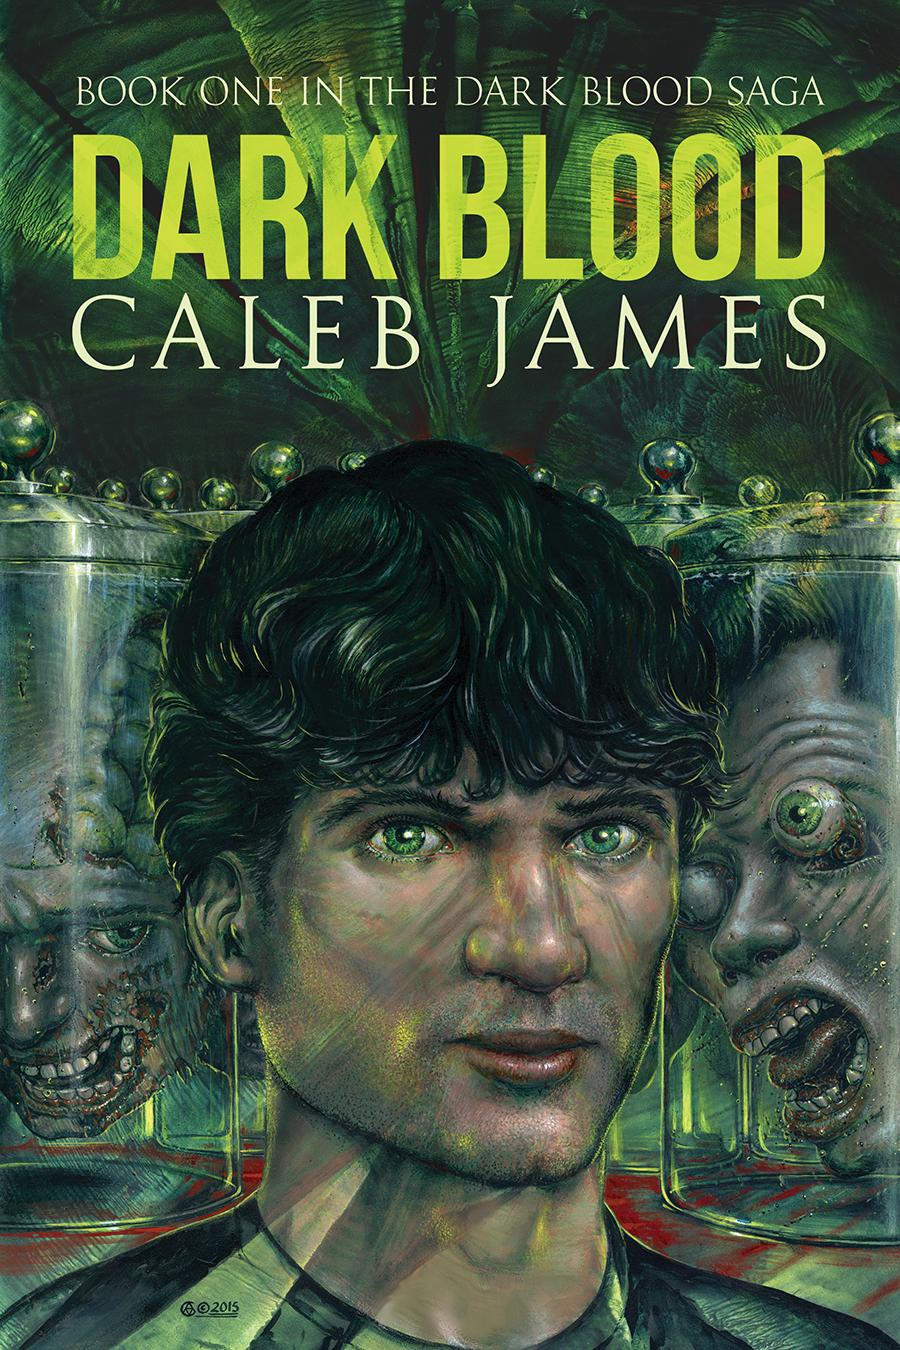 Dark Blood Cover (1 of 1)